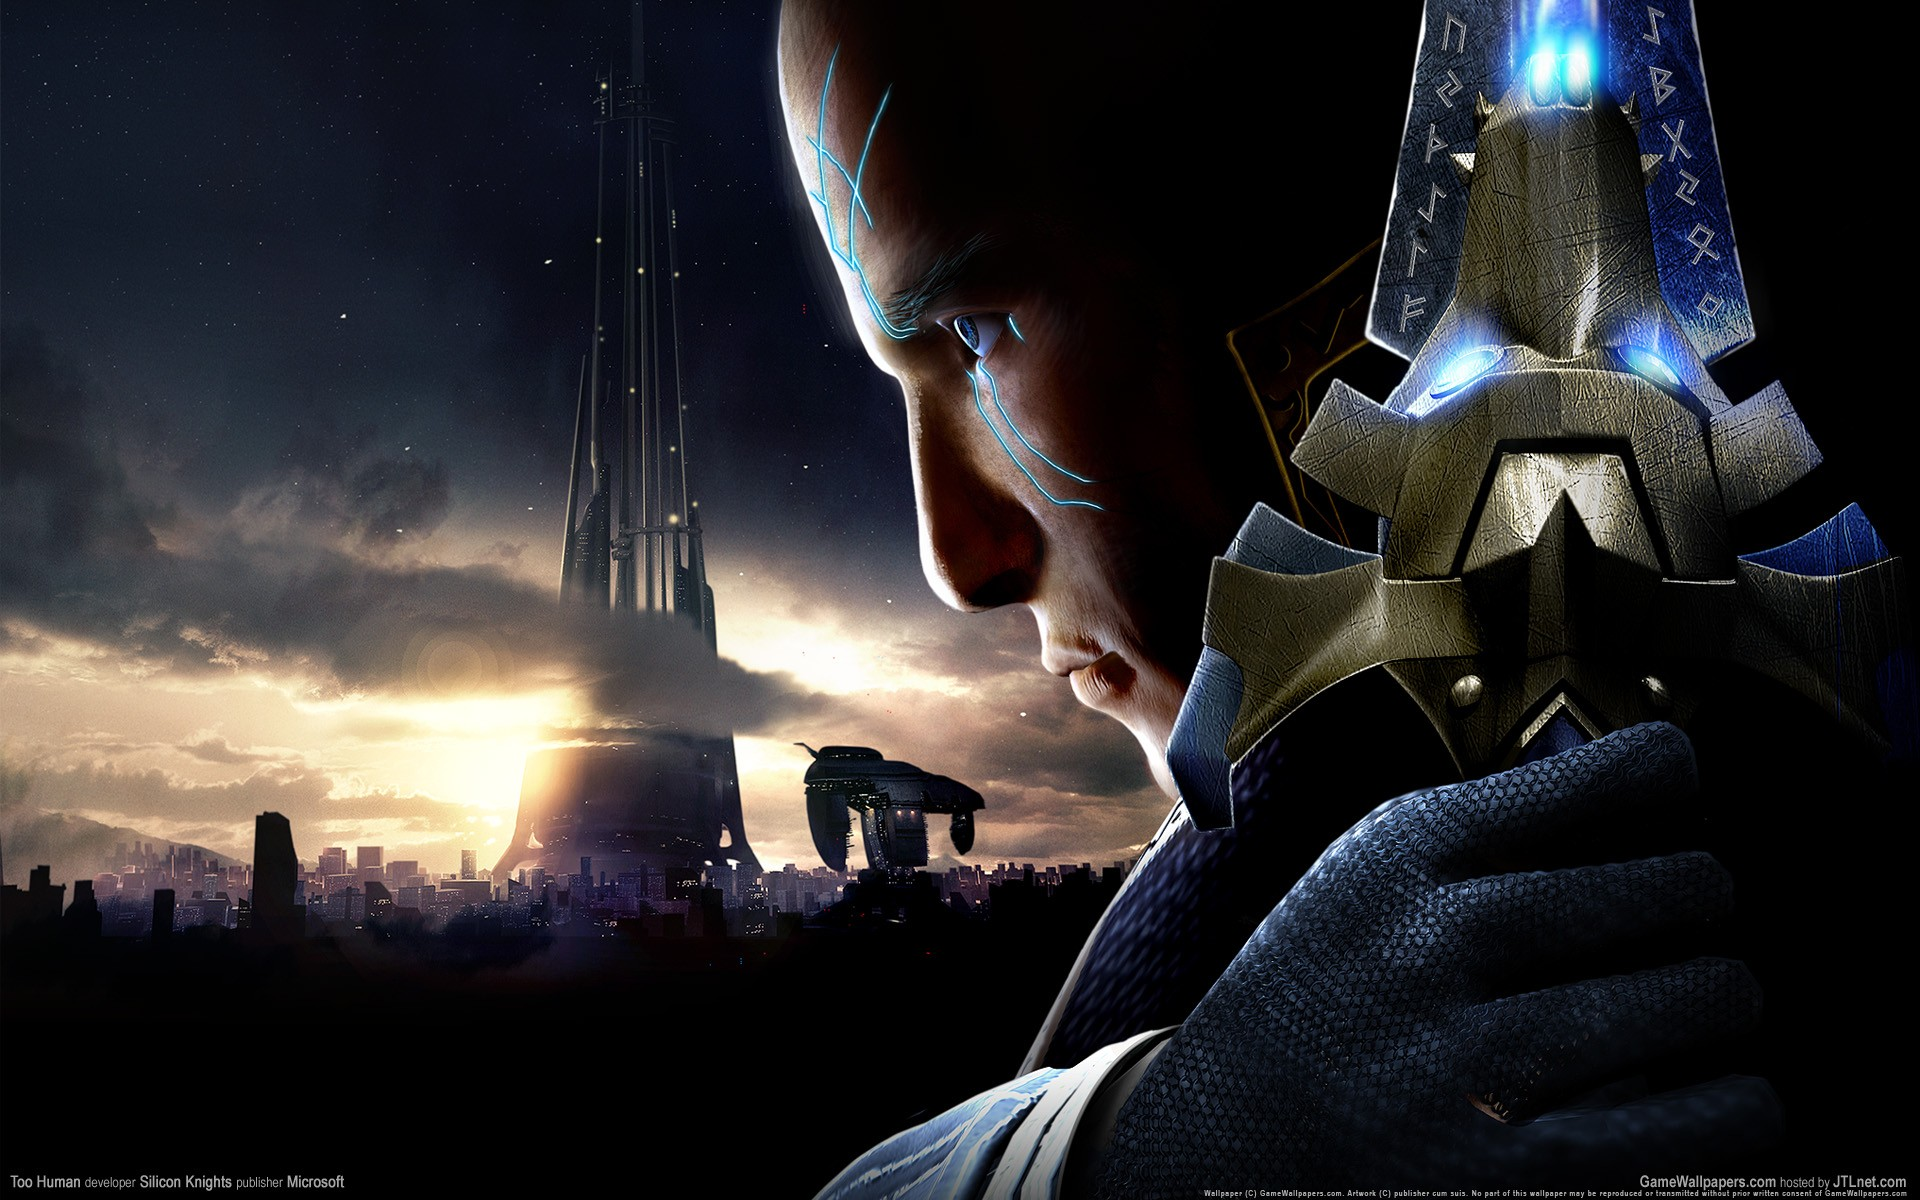 video_game_wallpapers_technobuzz_net_14